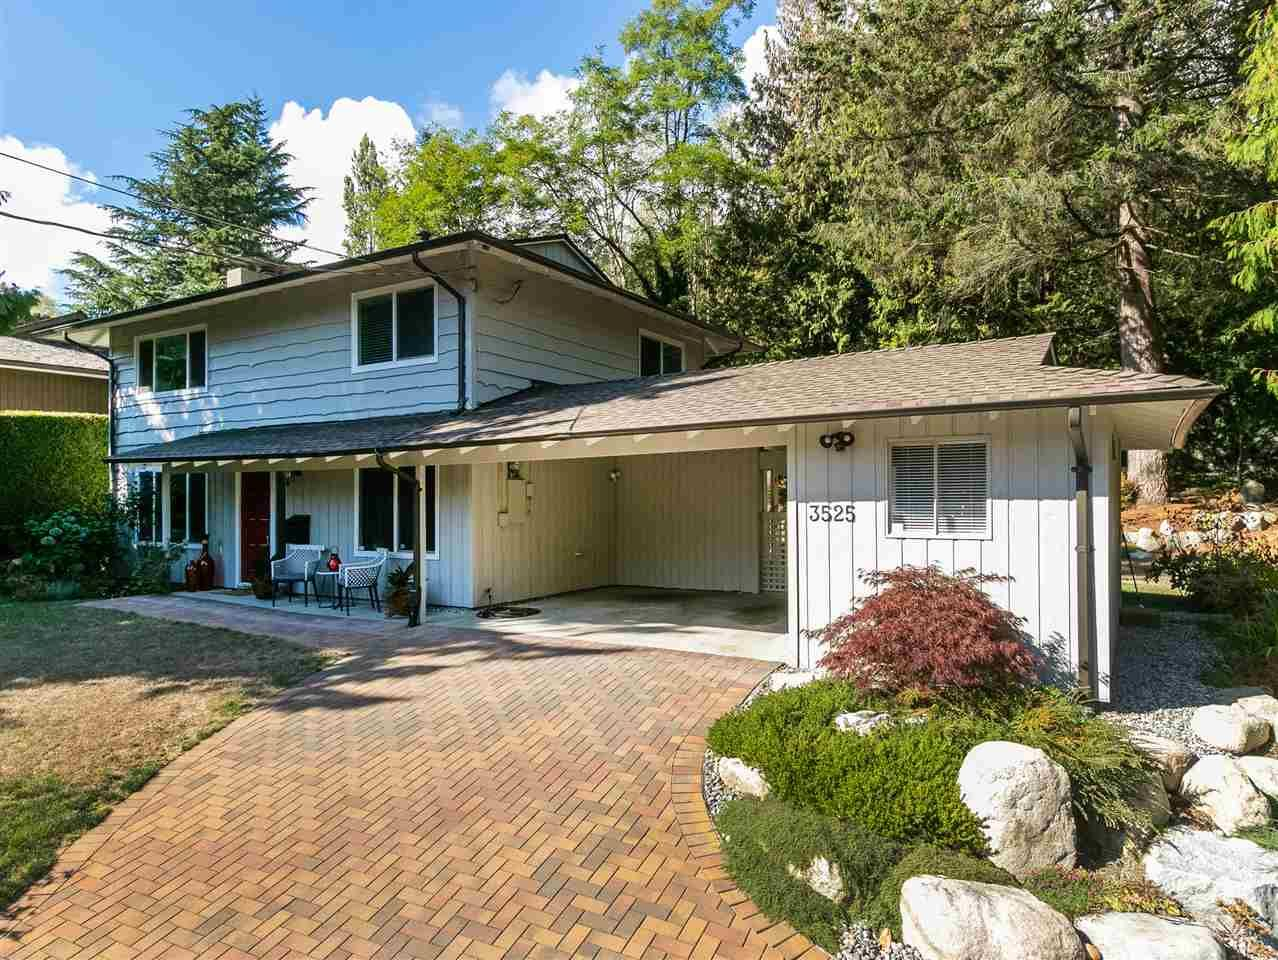 Main Photo: 3525 WESTMOUNT Road in West Vancouver: Westmount WV House for sale : MLS®# R2532280